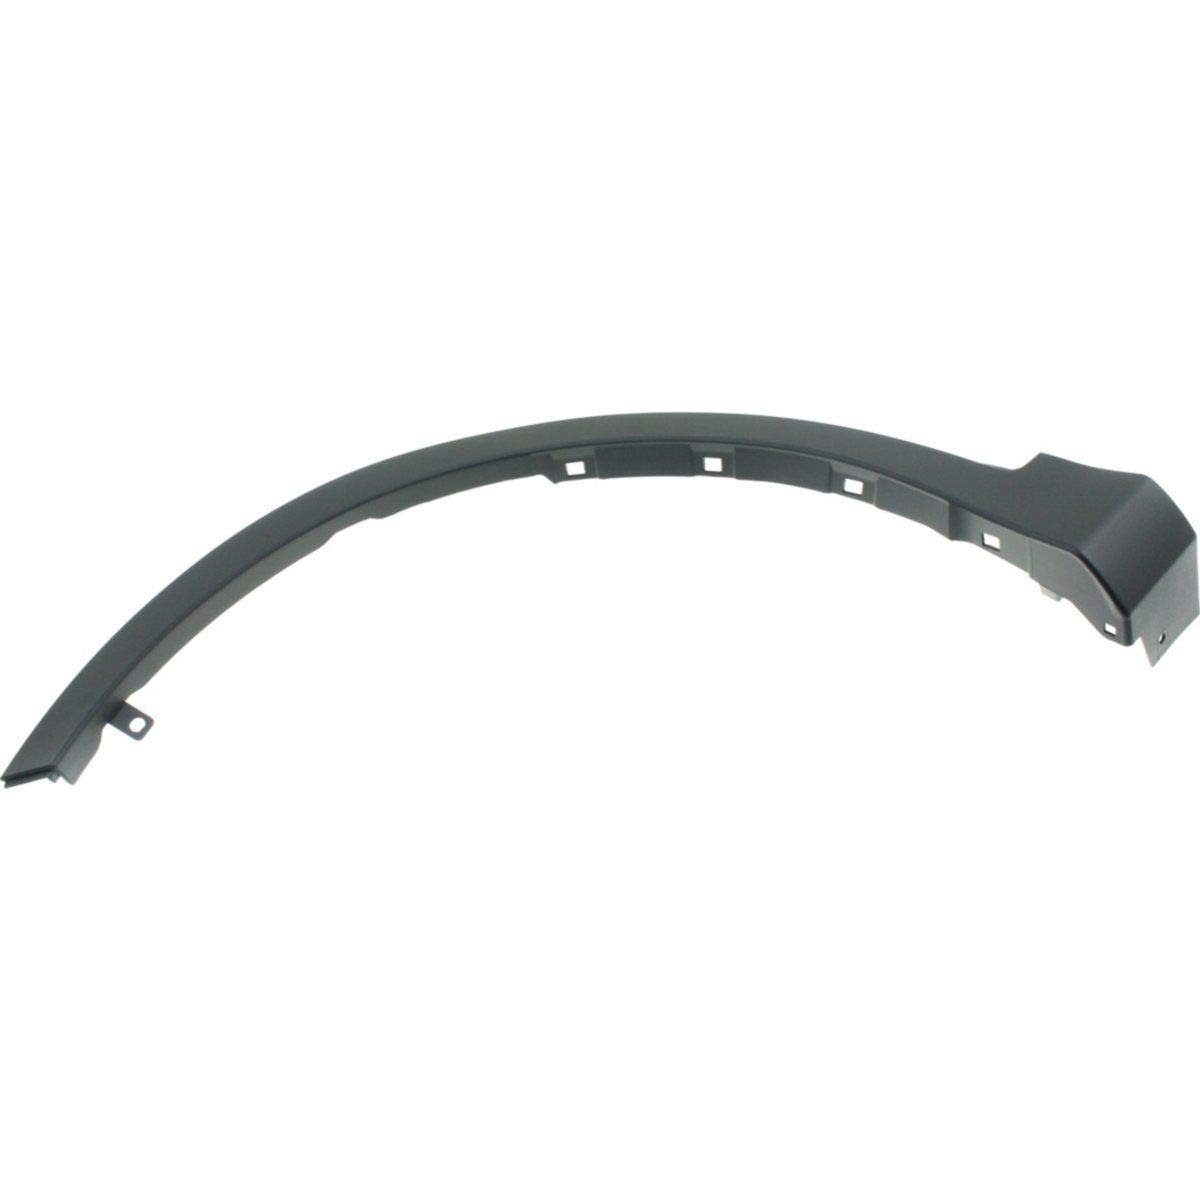 Japan Built New Front Left Driver Side Wheel Arch Trim For 2013-2015 Toyota RAV4 Textured-Black Made Of PP Plastic TO1290107 7560242150